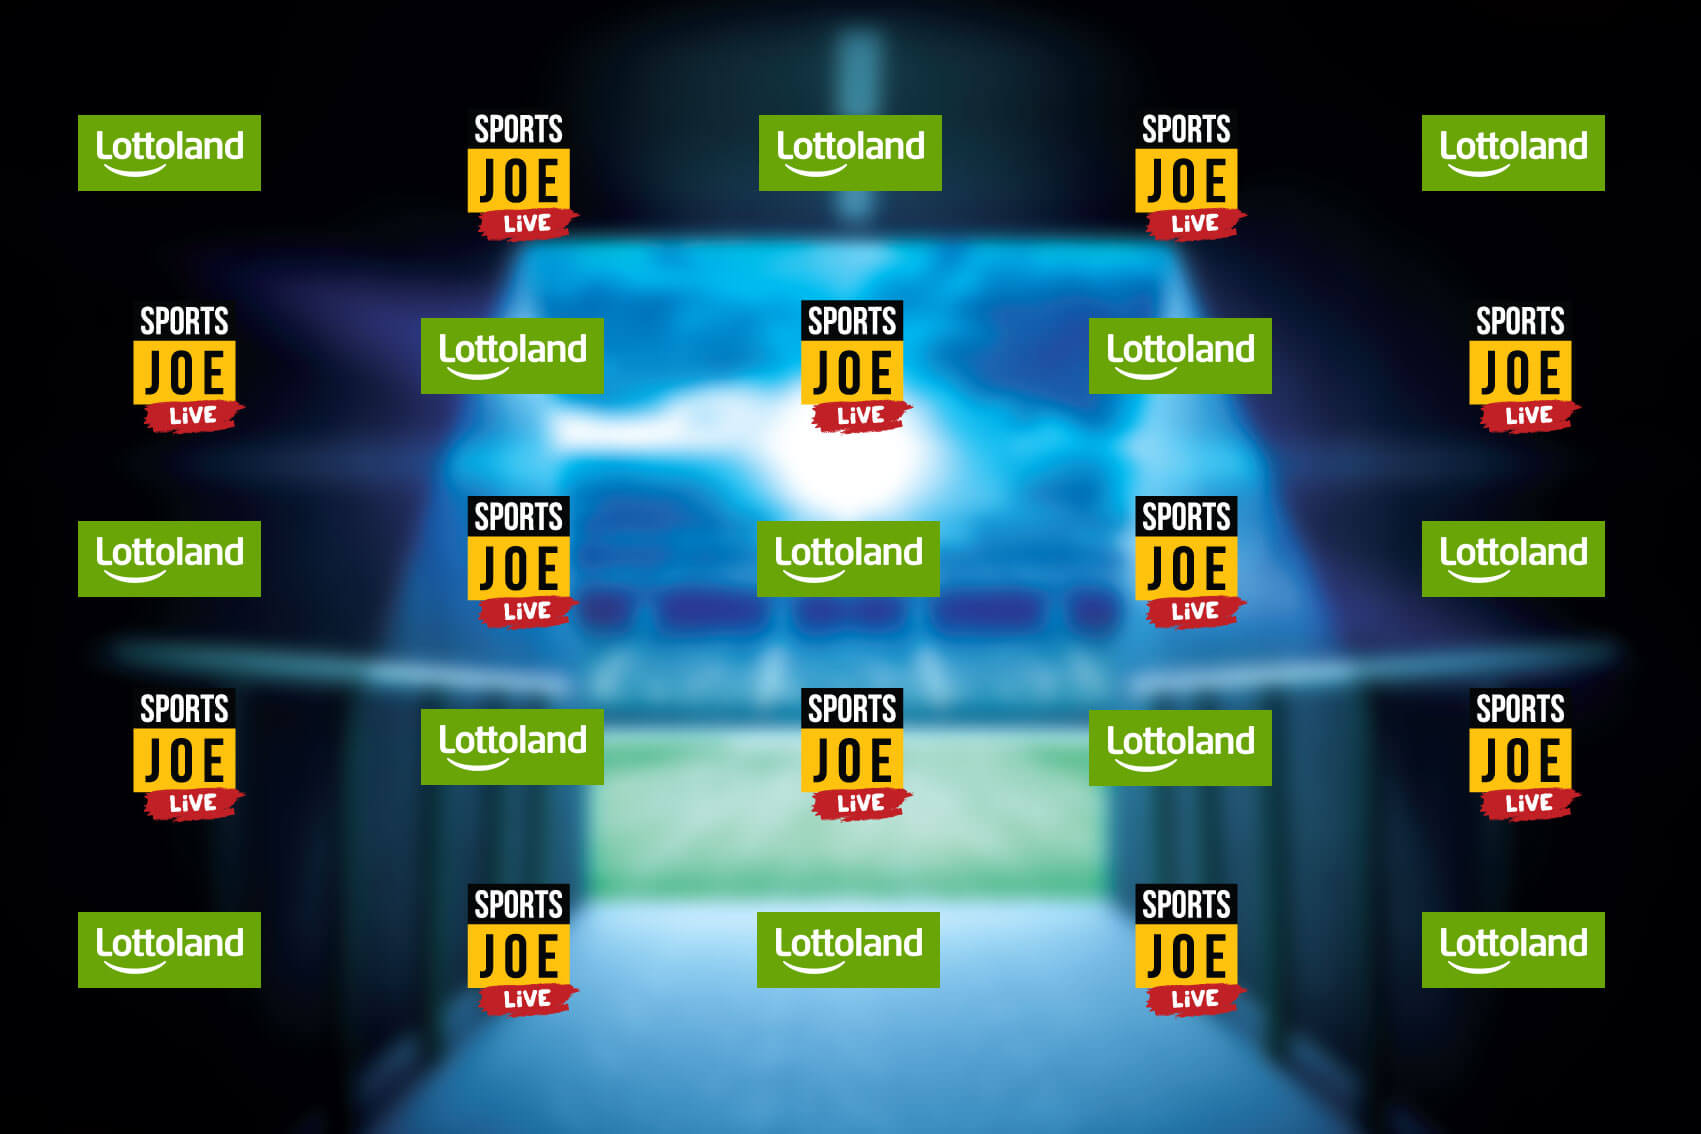 SportsJOE Live and Lottoland: The Highlights